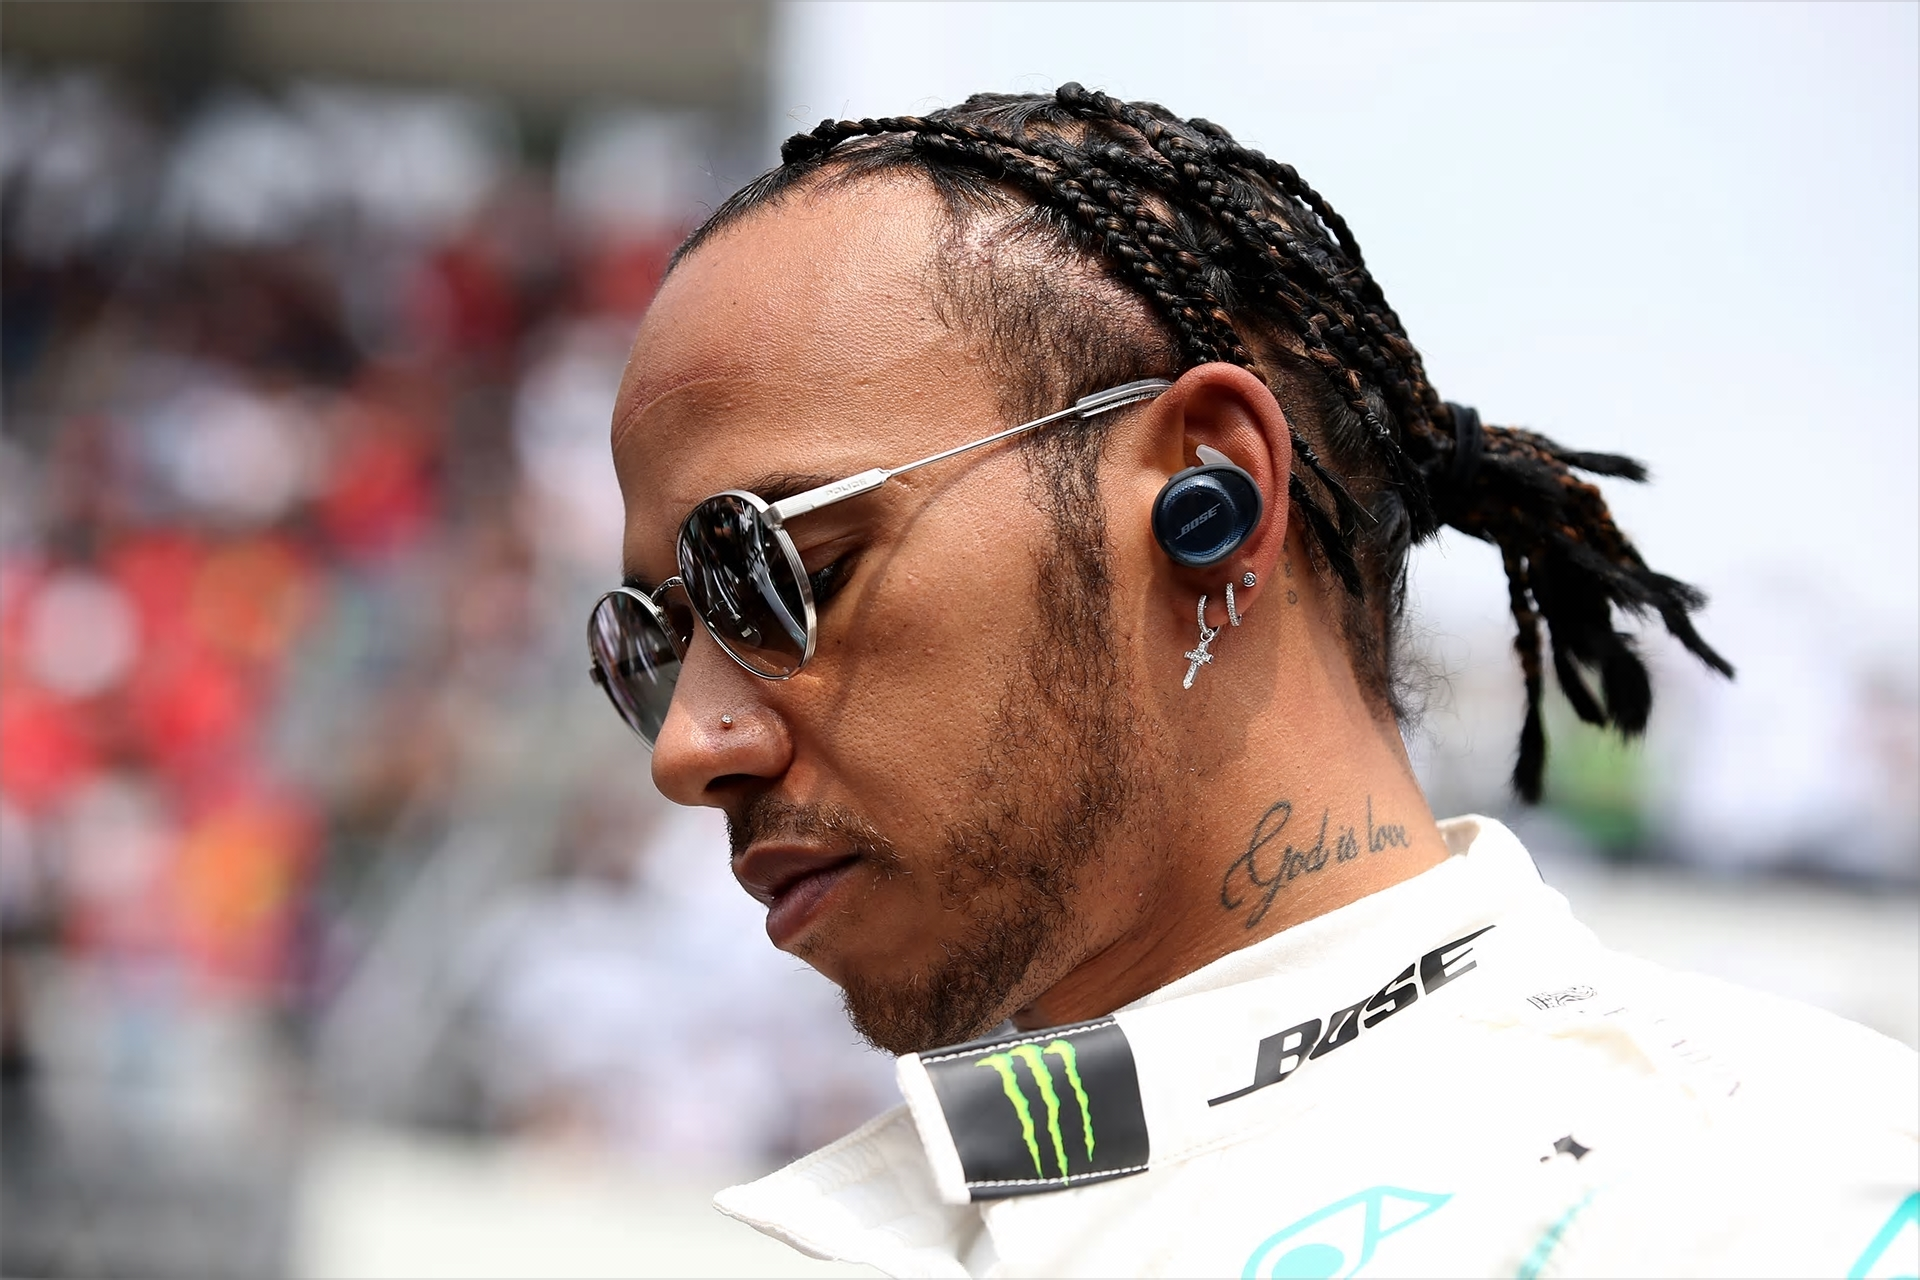 Lewis Hamilton Has Said He Turned Down A Role In Top Gun 2